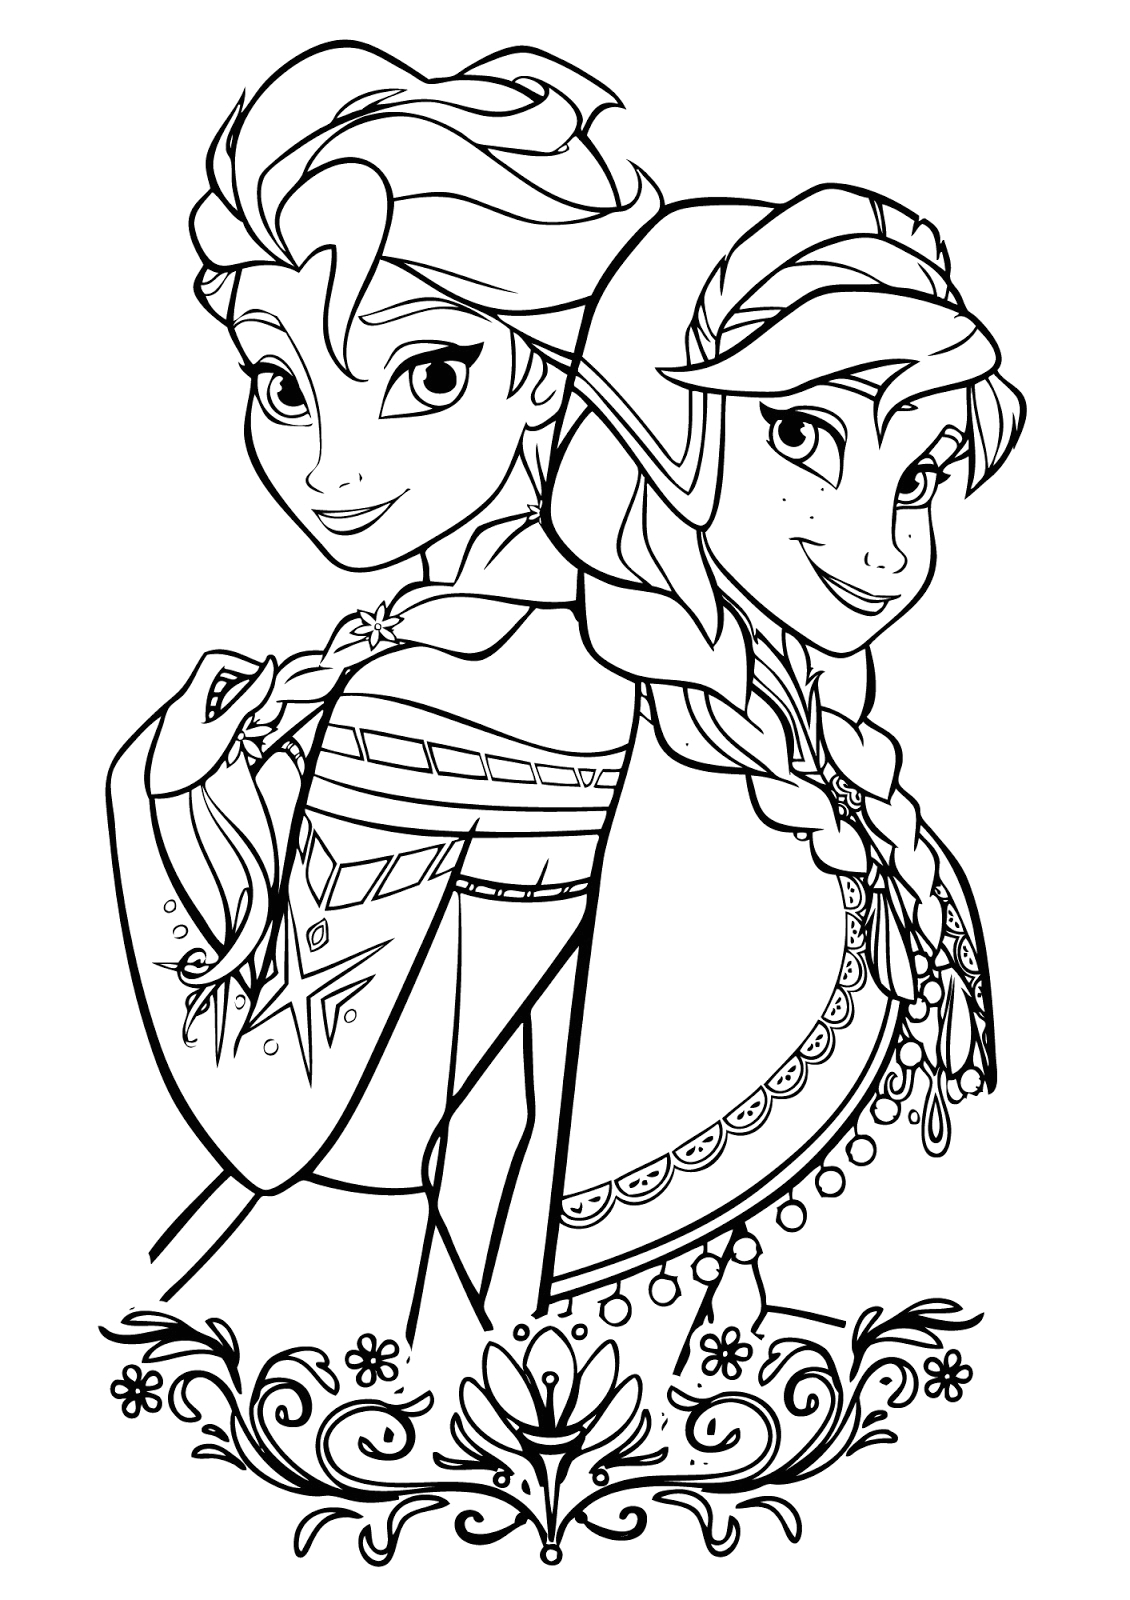 Free Disney Frozen Coloring Pages to Print 15 Beautiful Disney Frozen Coloring Pages Free Instant